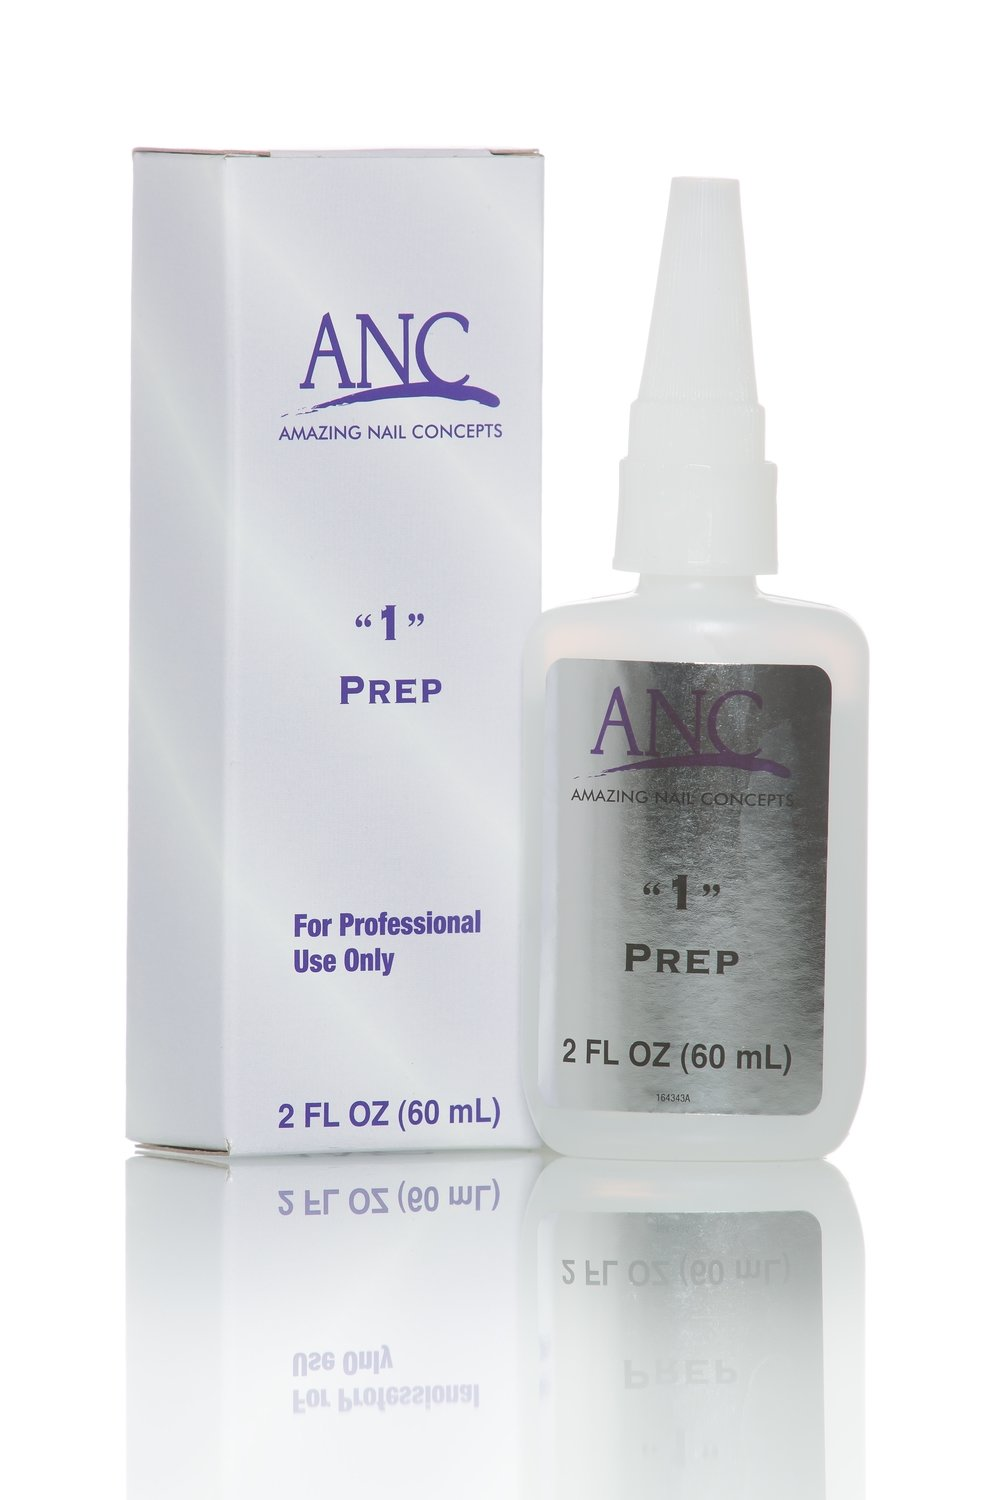 ANC Dip Essential Liquid 2 fl oz Refill - Step #1 Prep